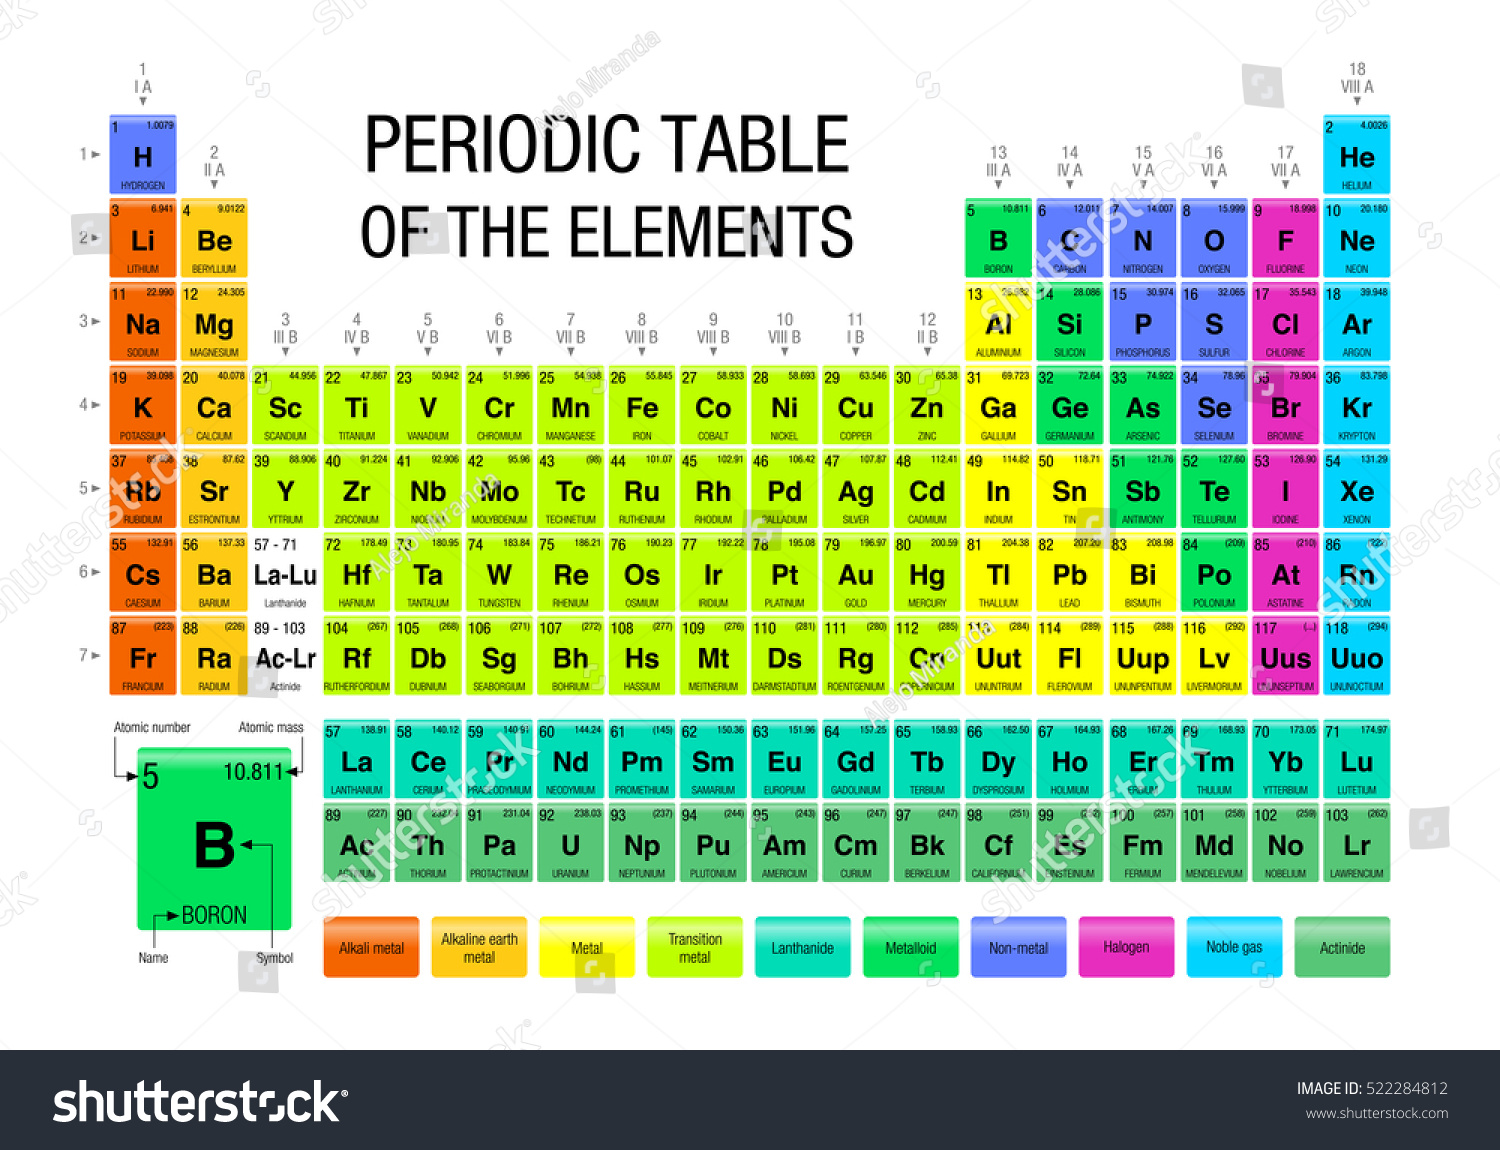 Periodic table elements chemistry stock vector 522284812 - Periodic table of the chemical elements ...